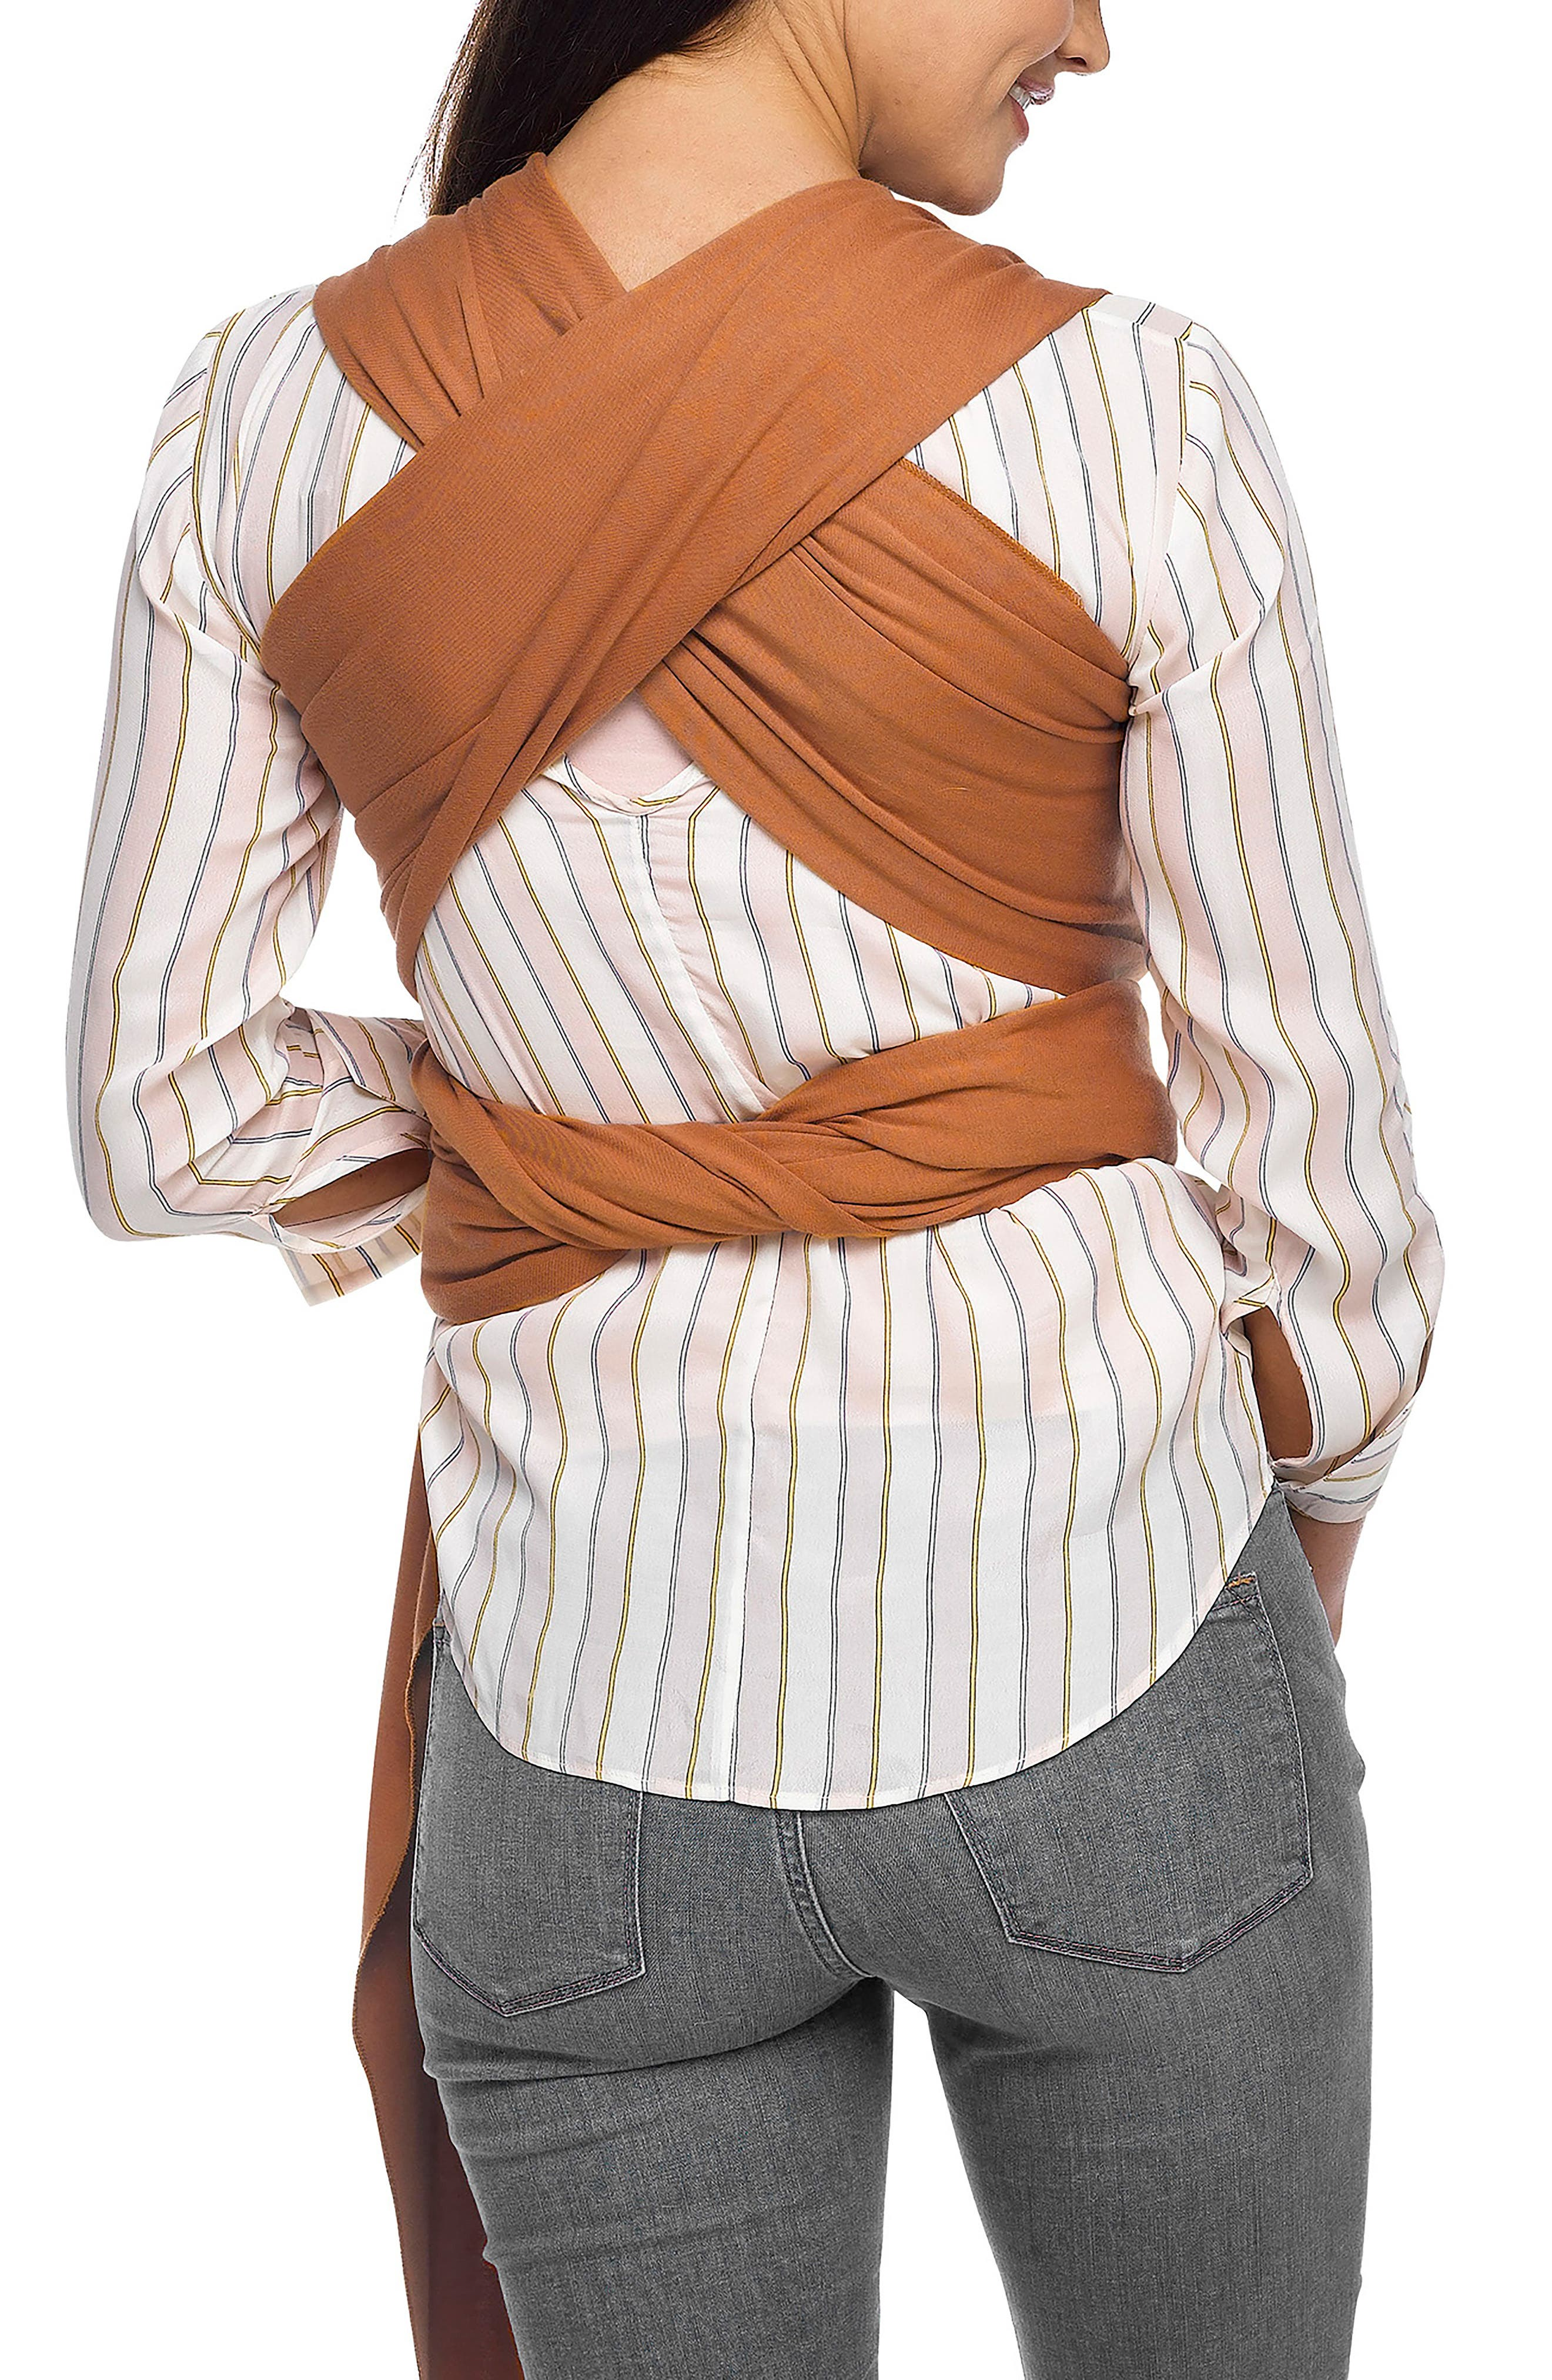 Wrap Baby Carrier,                             Alternate thumbnail 2, color,                             Caramel